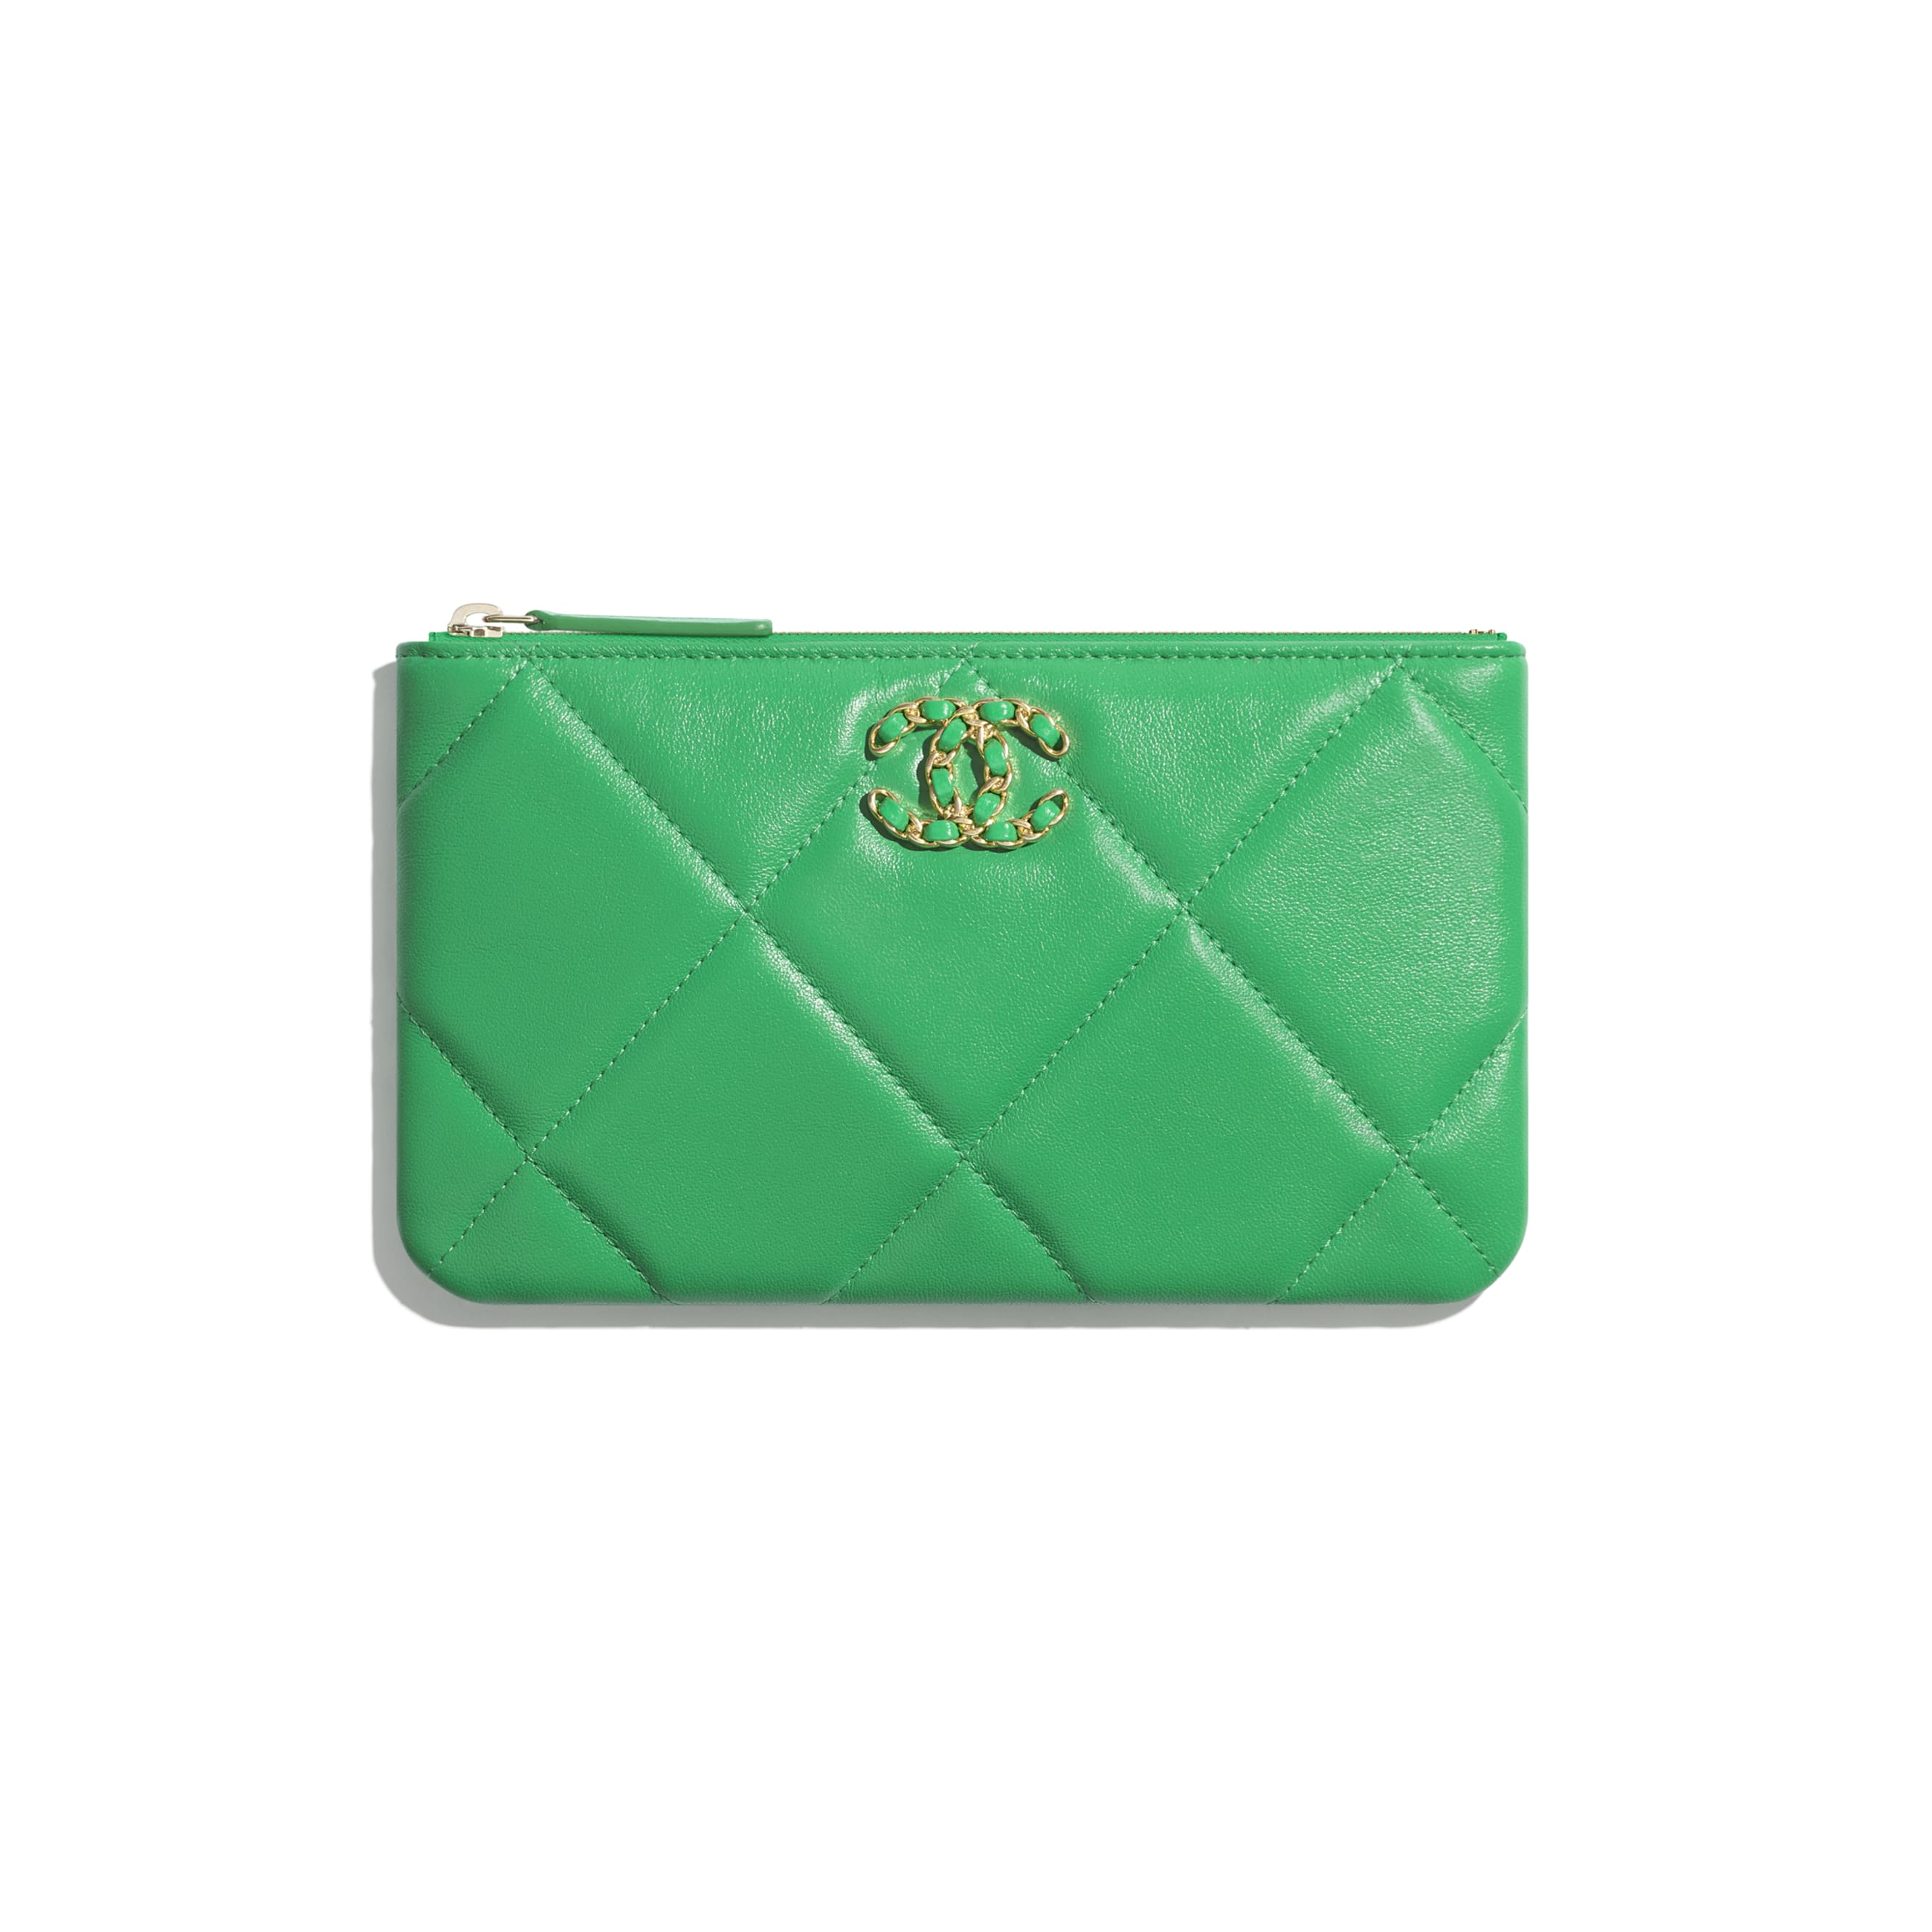 CHANEL 19 Small Pouch - Green - Lambskin, Gold-Tone, Silver-Tone & Ruthenium-Finish Metal - CHANEL - Default view - see standard sized version